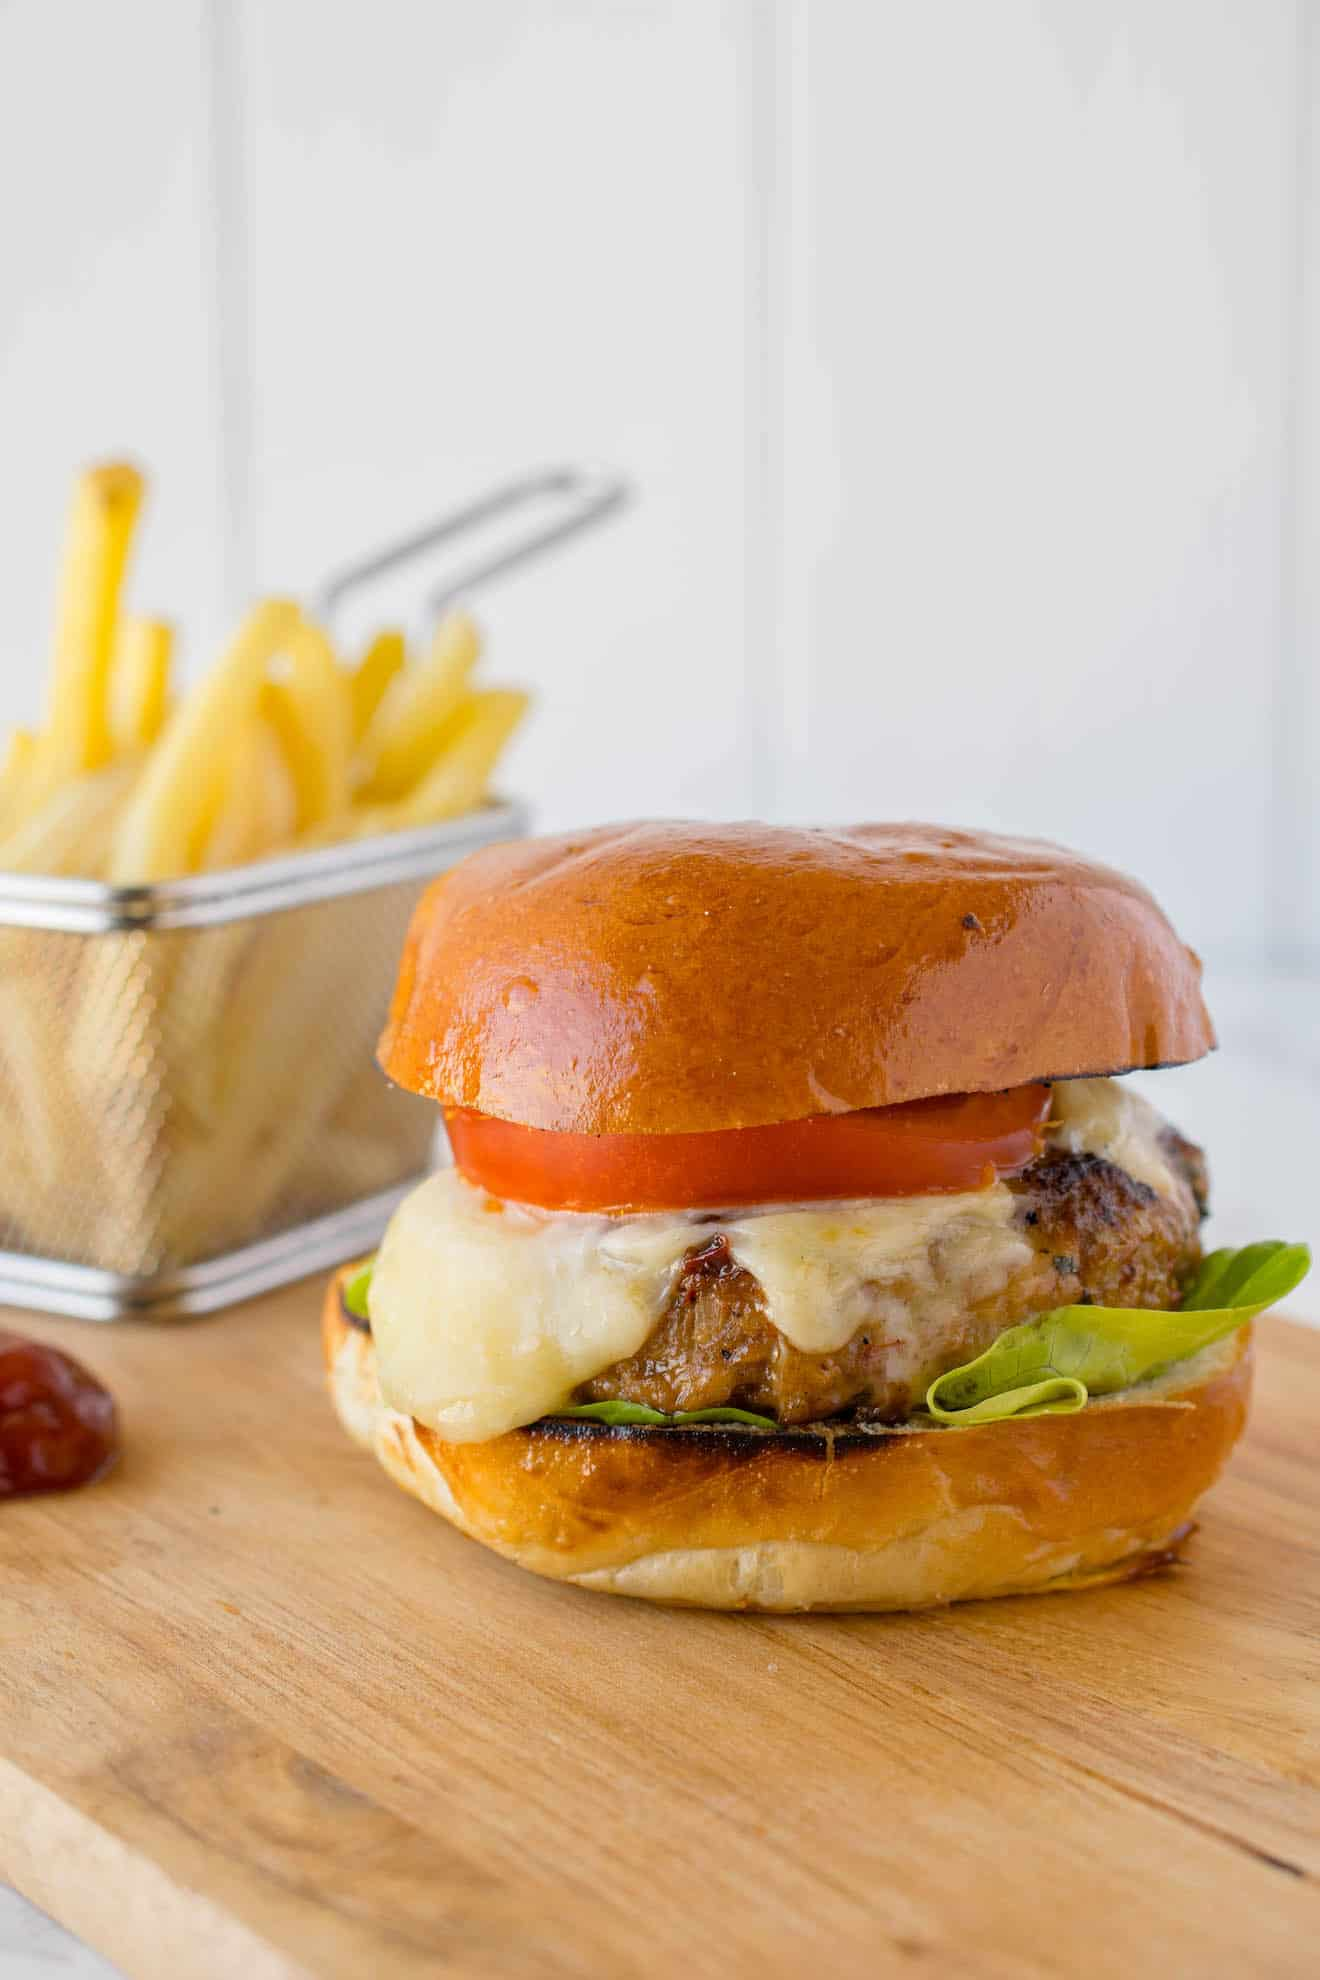 A thick chipotle chicken burger topped with melted cheese, tomato and lettuce